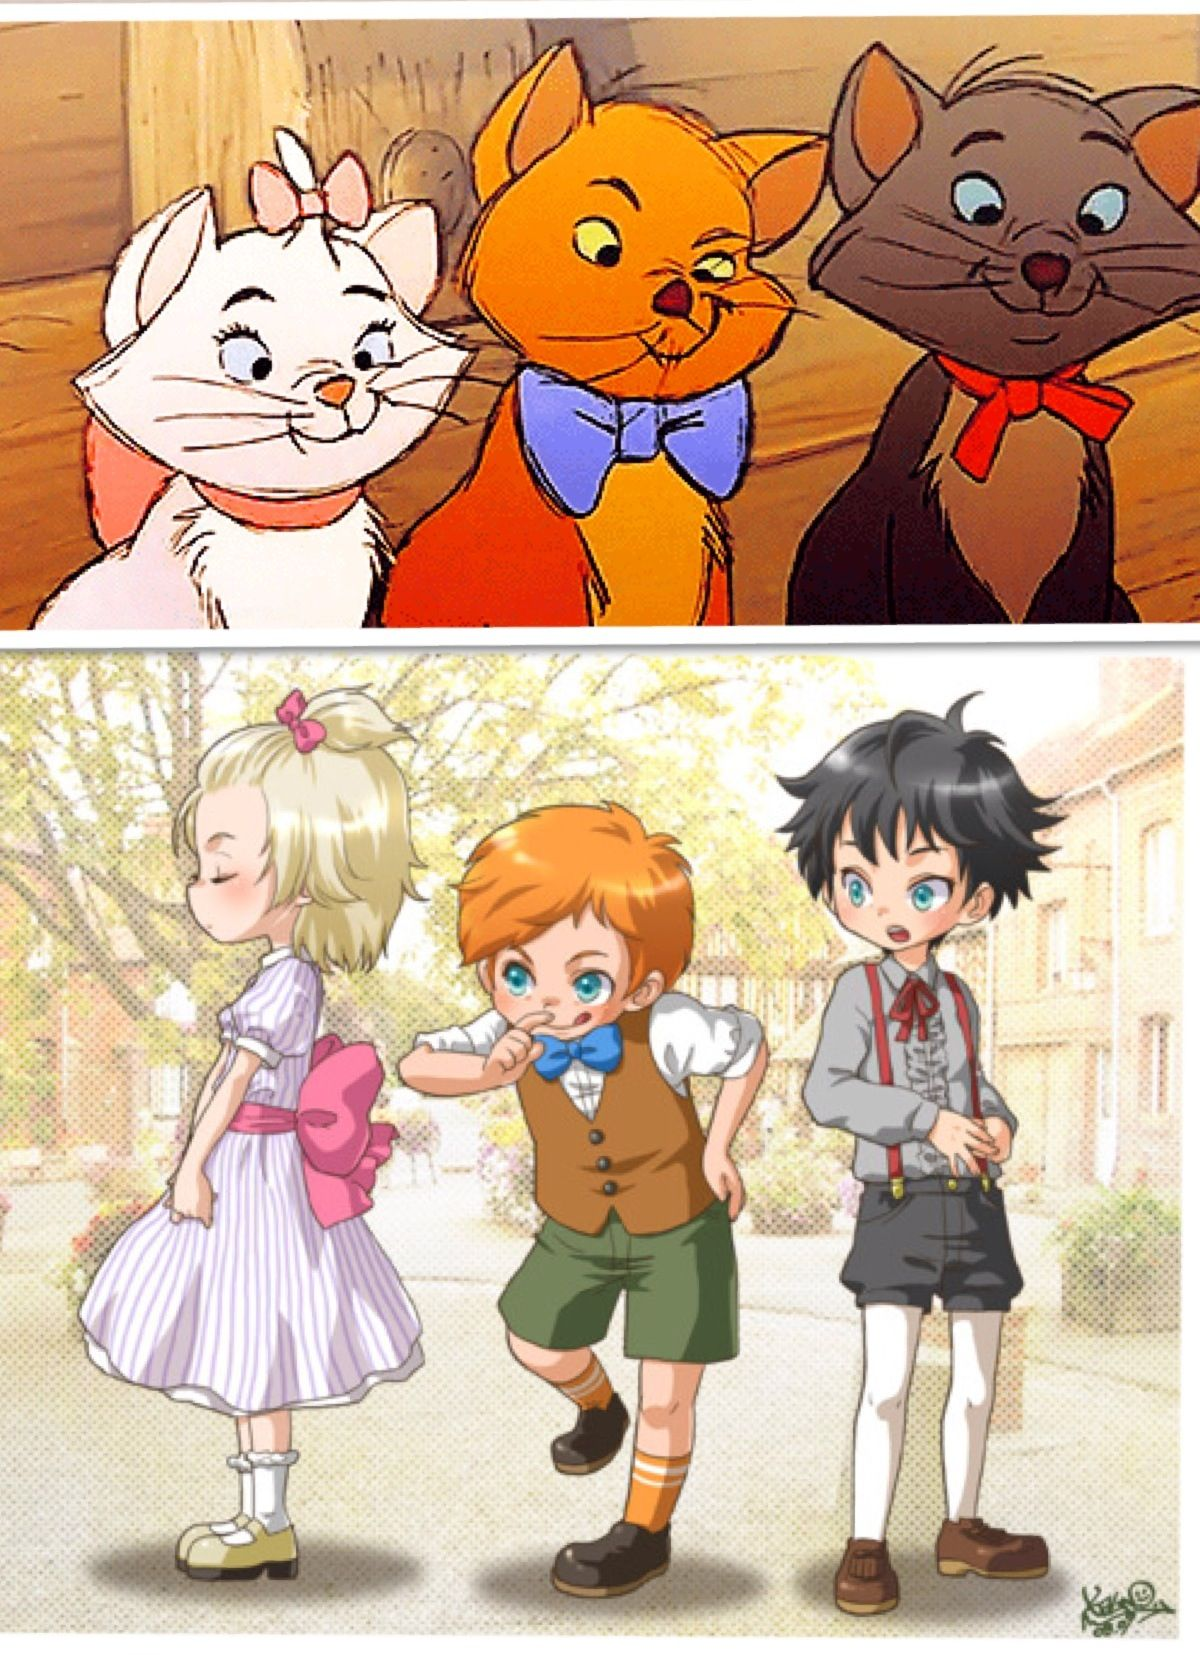 Uncategorized Berlioz Aristocats disneys the aristocats marie toulouse and berlioz as humans in anime